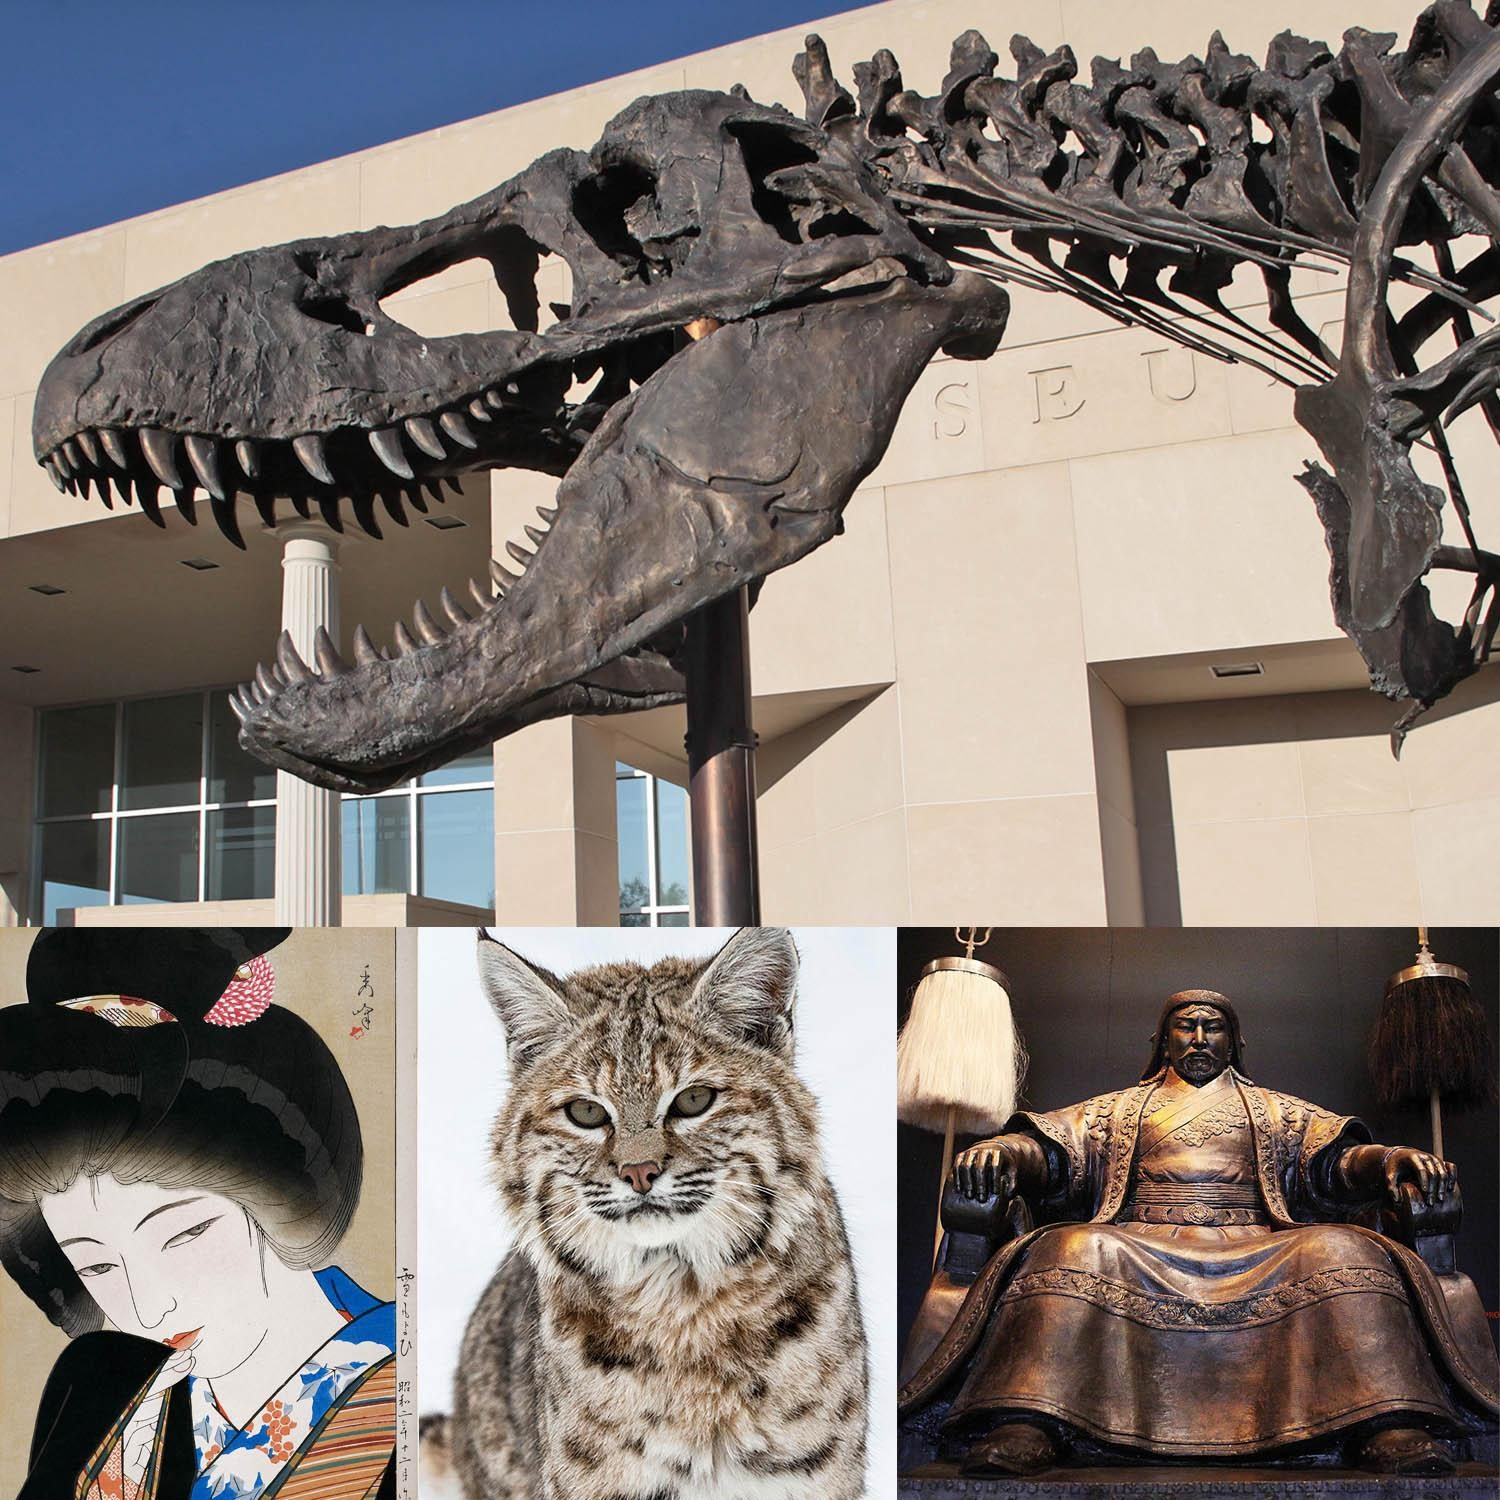 Collage of the Big Mike sculptures and photos from past exhibits such as Seven Masters, A Life in the Wild, & Genghis Khan.